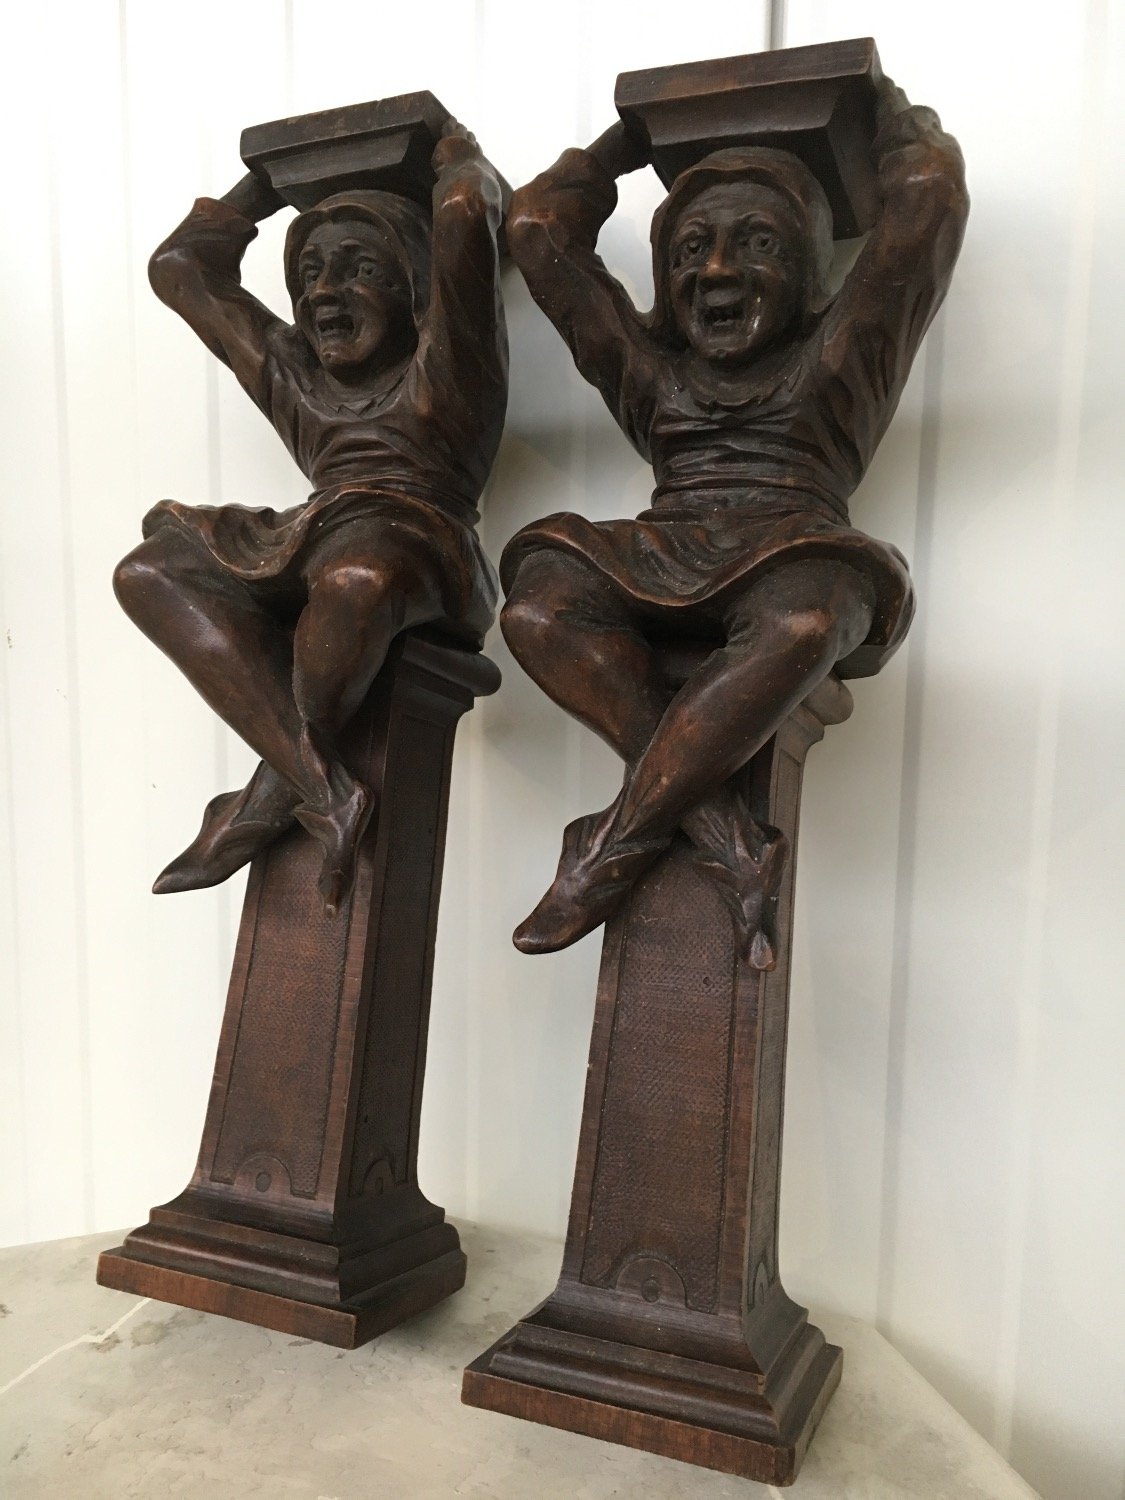 Pair of jester figures in wood